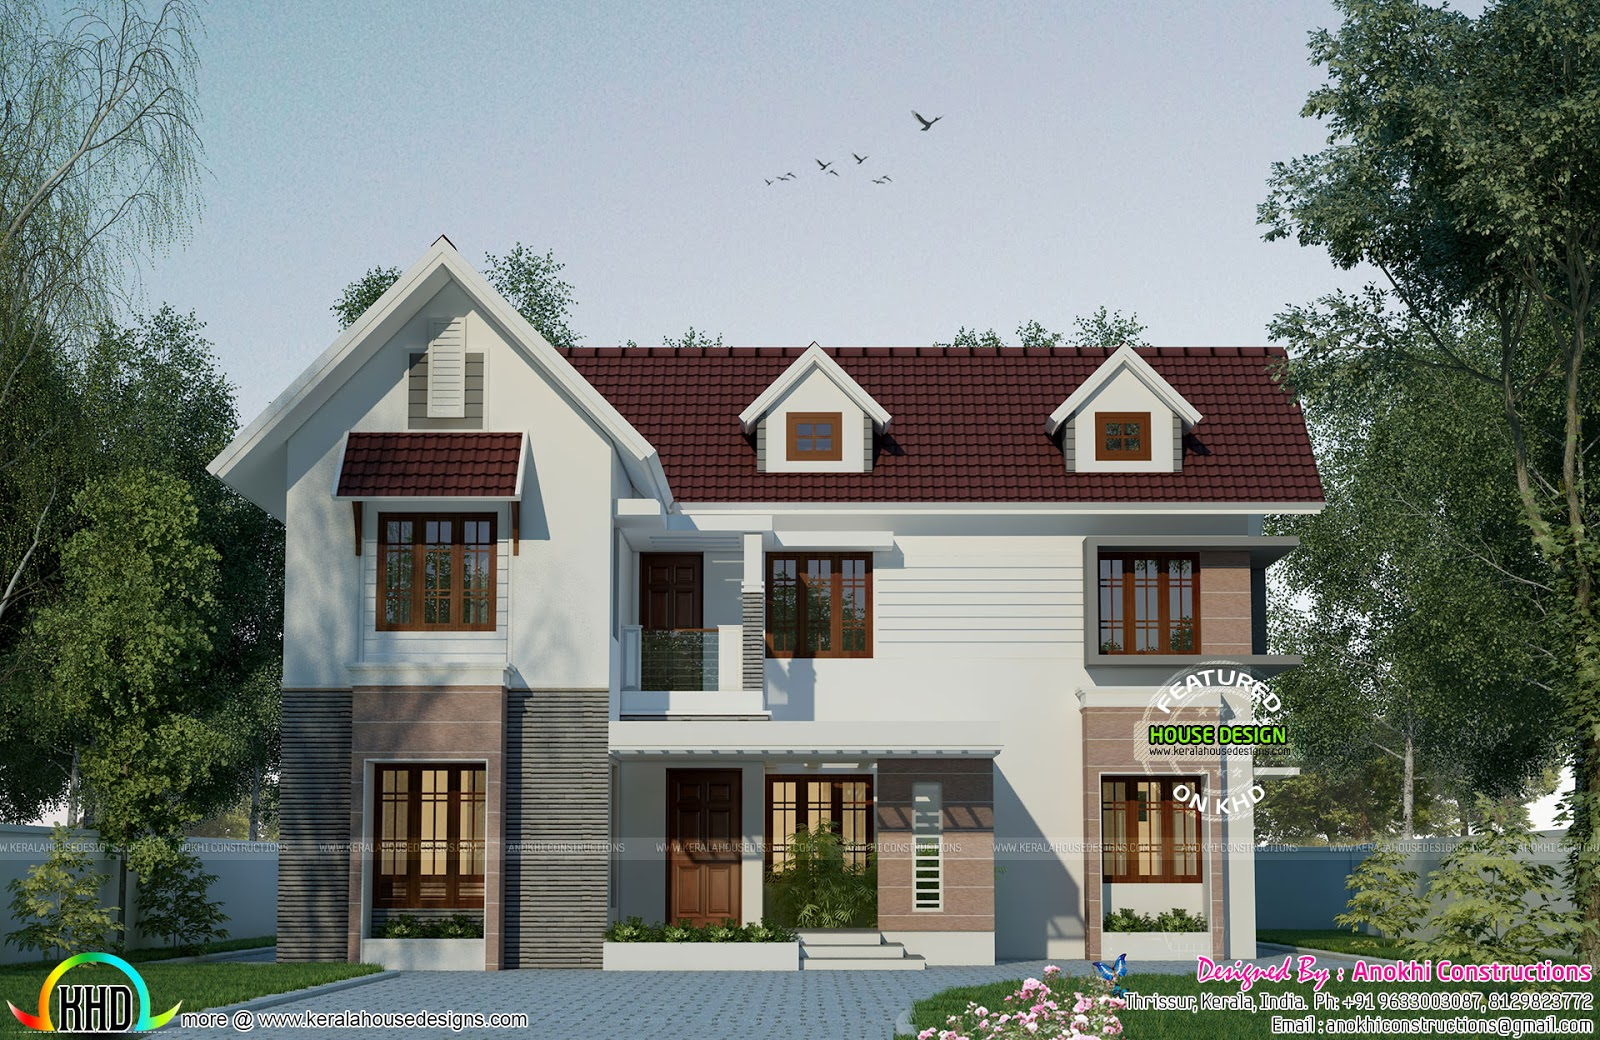 Sweet Home Design With 4 Bedrooms